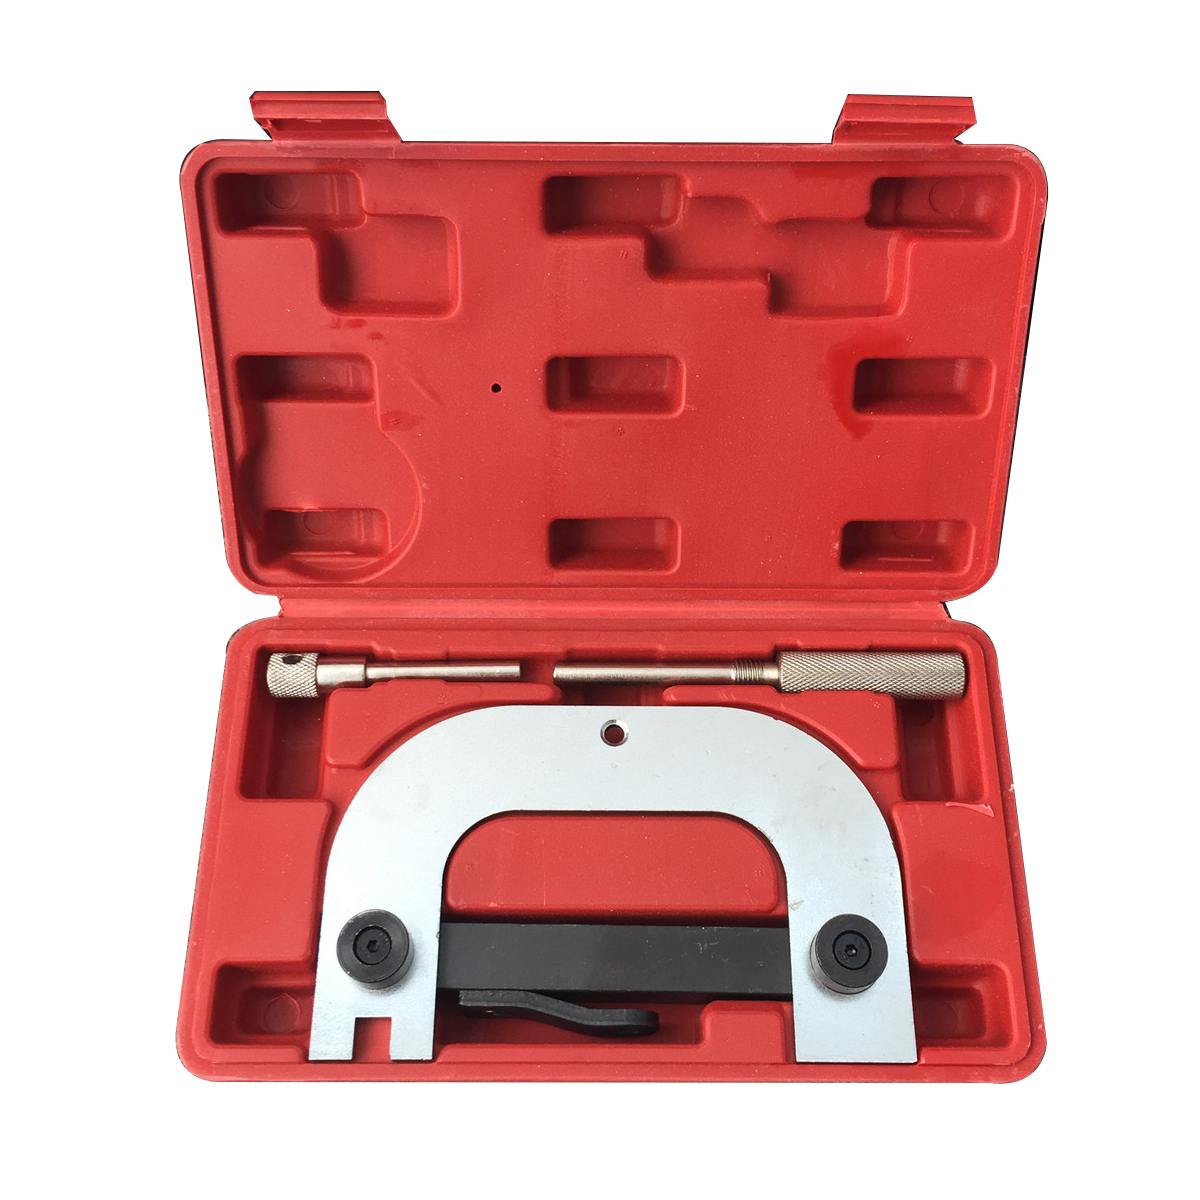 Engine Timing Tool Kit For Renault Vauxhall Petrol Engines 1.4 1.6 1.8 2.0 16v Belt Driven